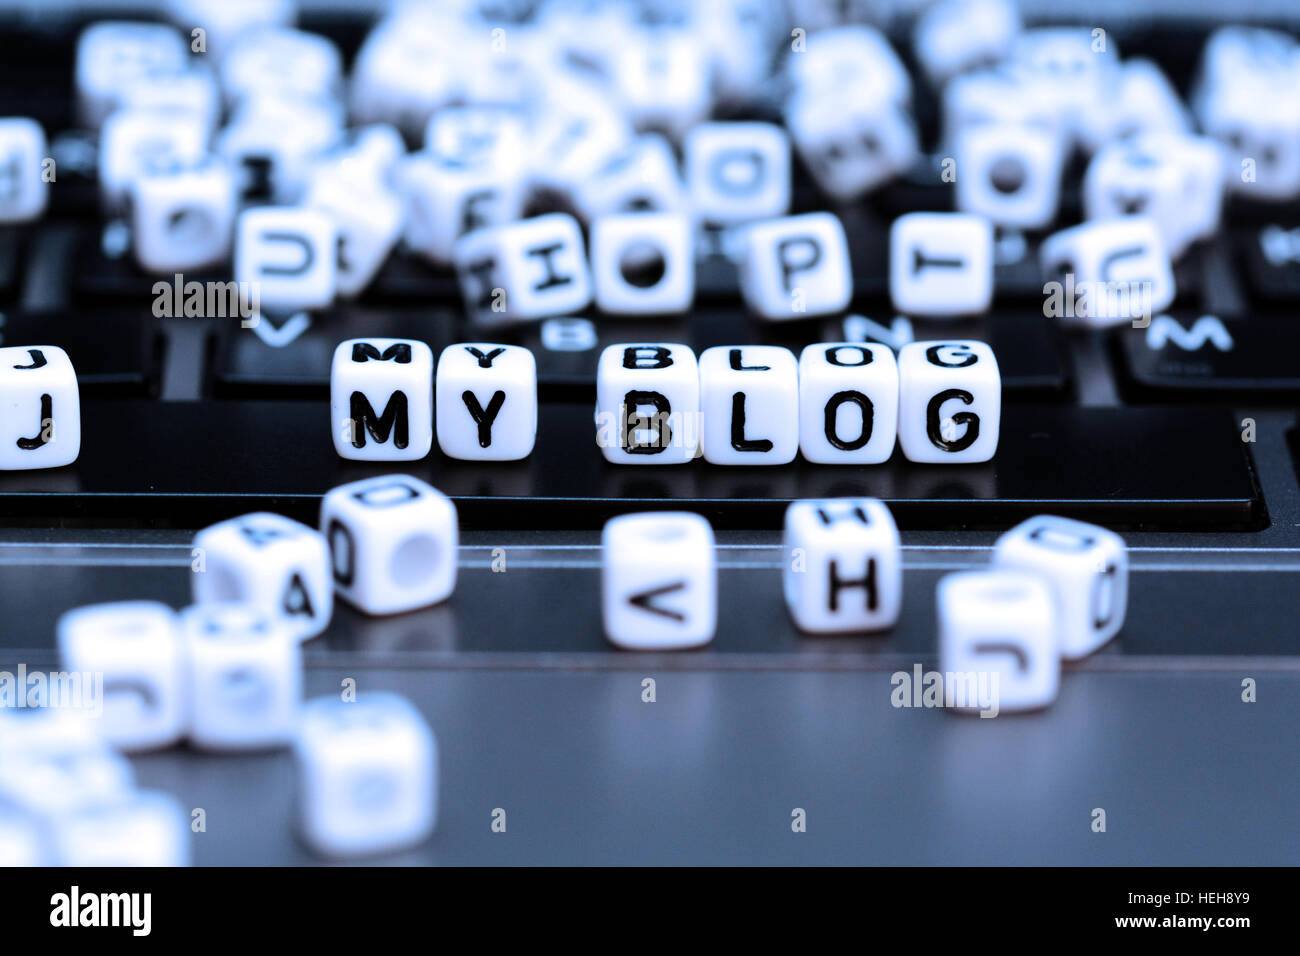 Create your blog and start writing to communicate with the world - Stock Image